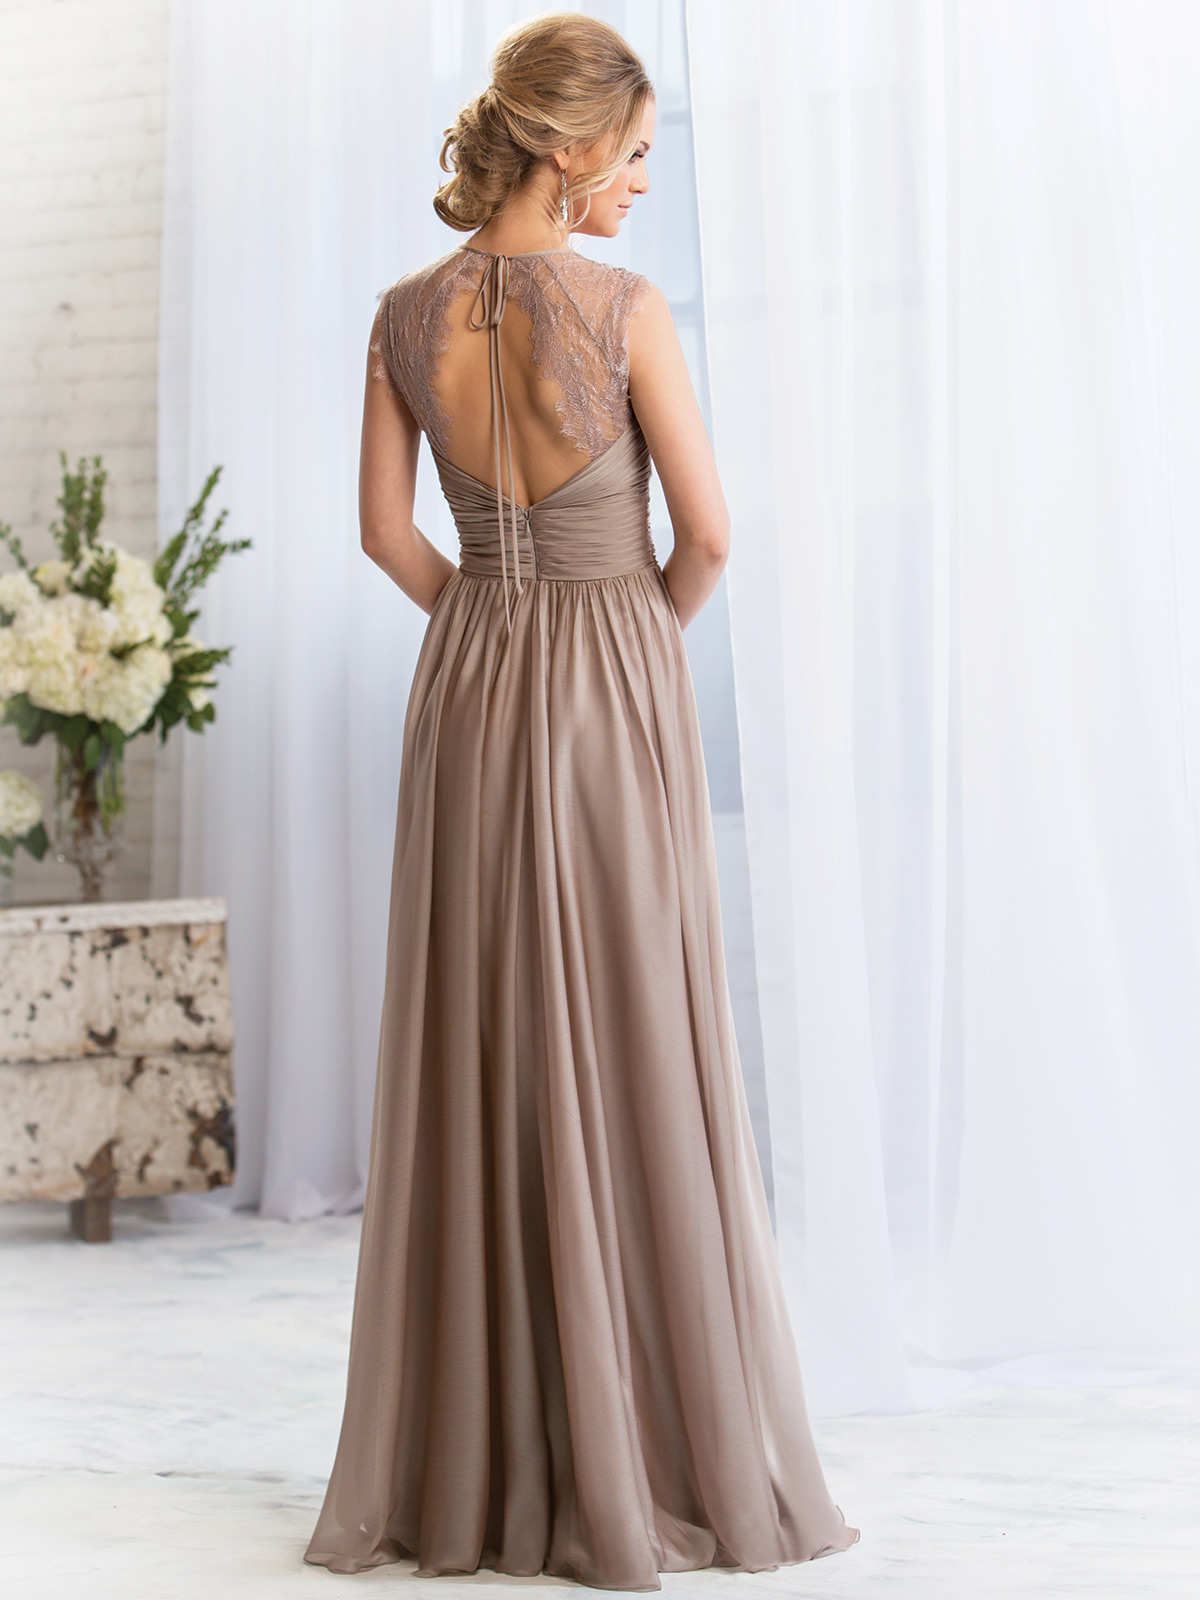 Belsoie bridesmaid dress l164057 dimitradesigns amazing chiffon floor length bridesmaid dress belsoie l164057 ombrellifo Images